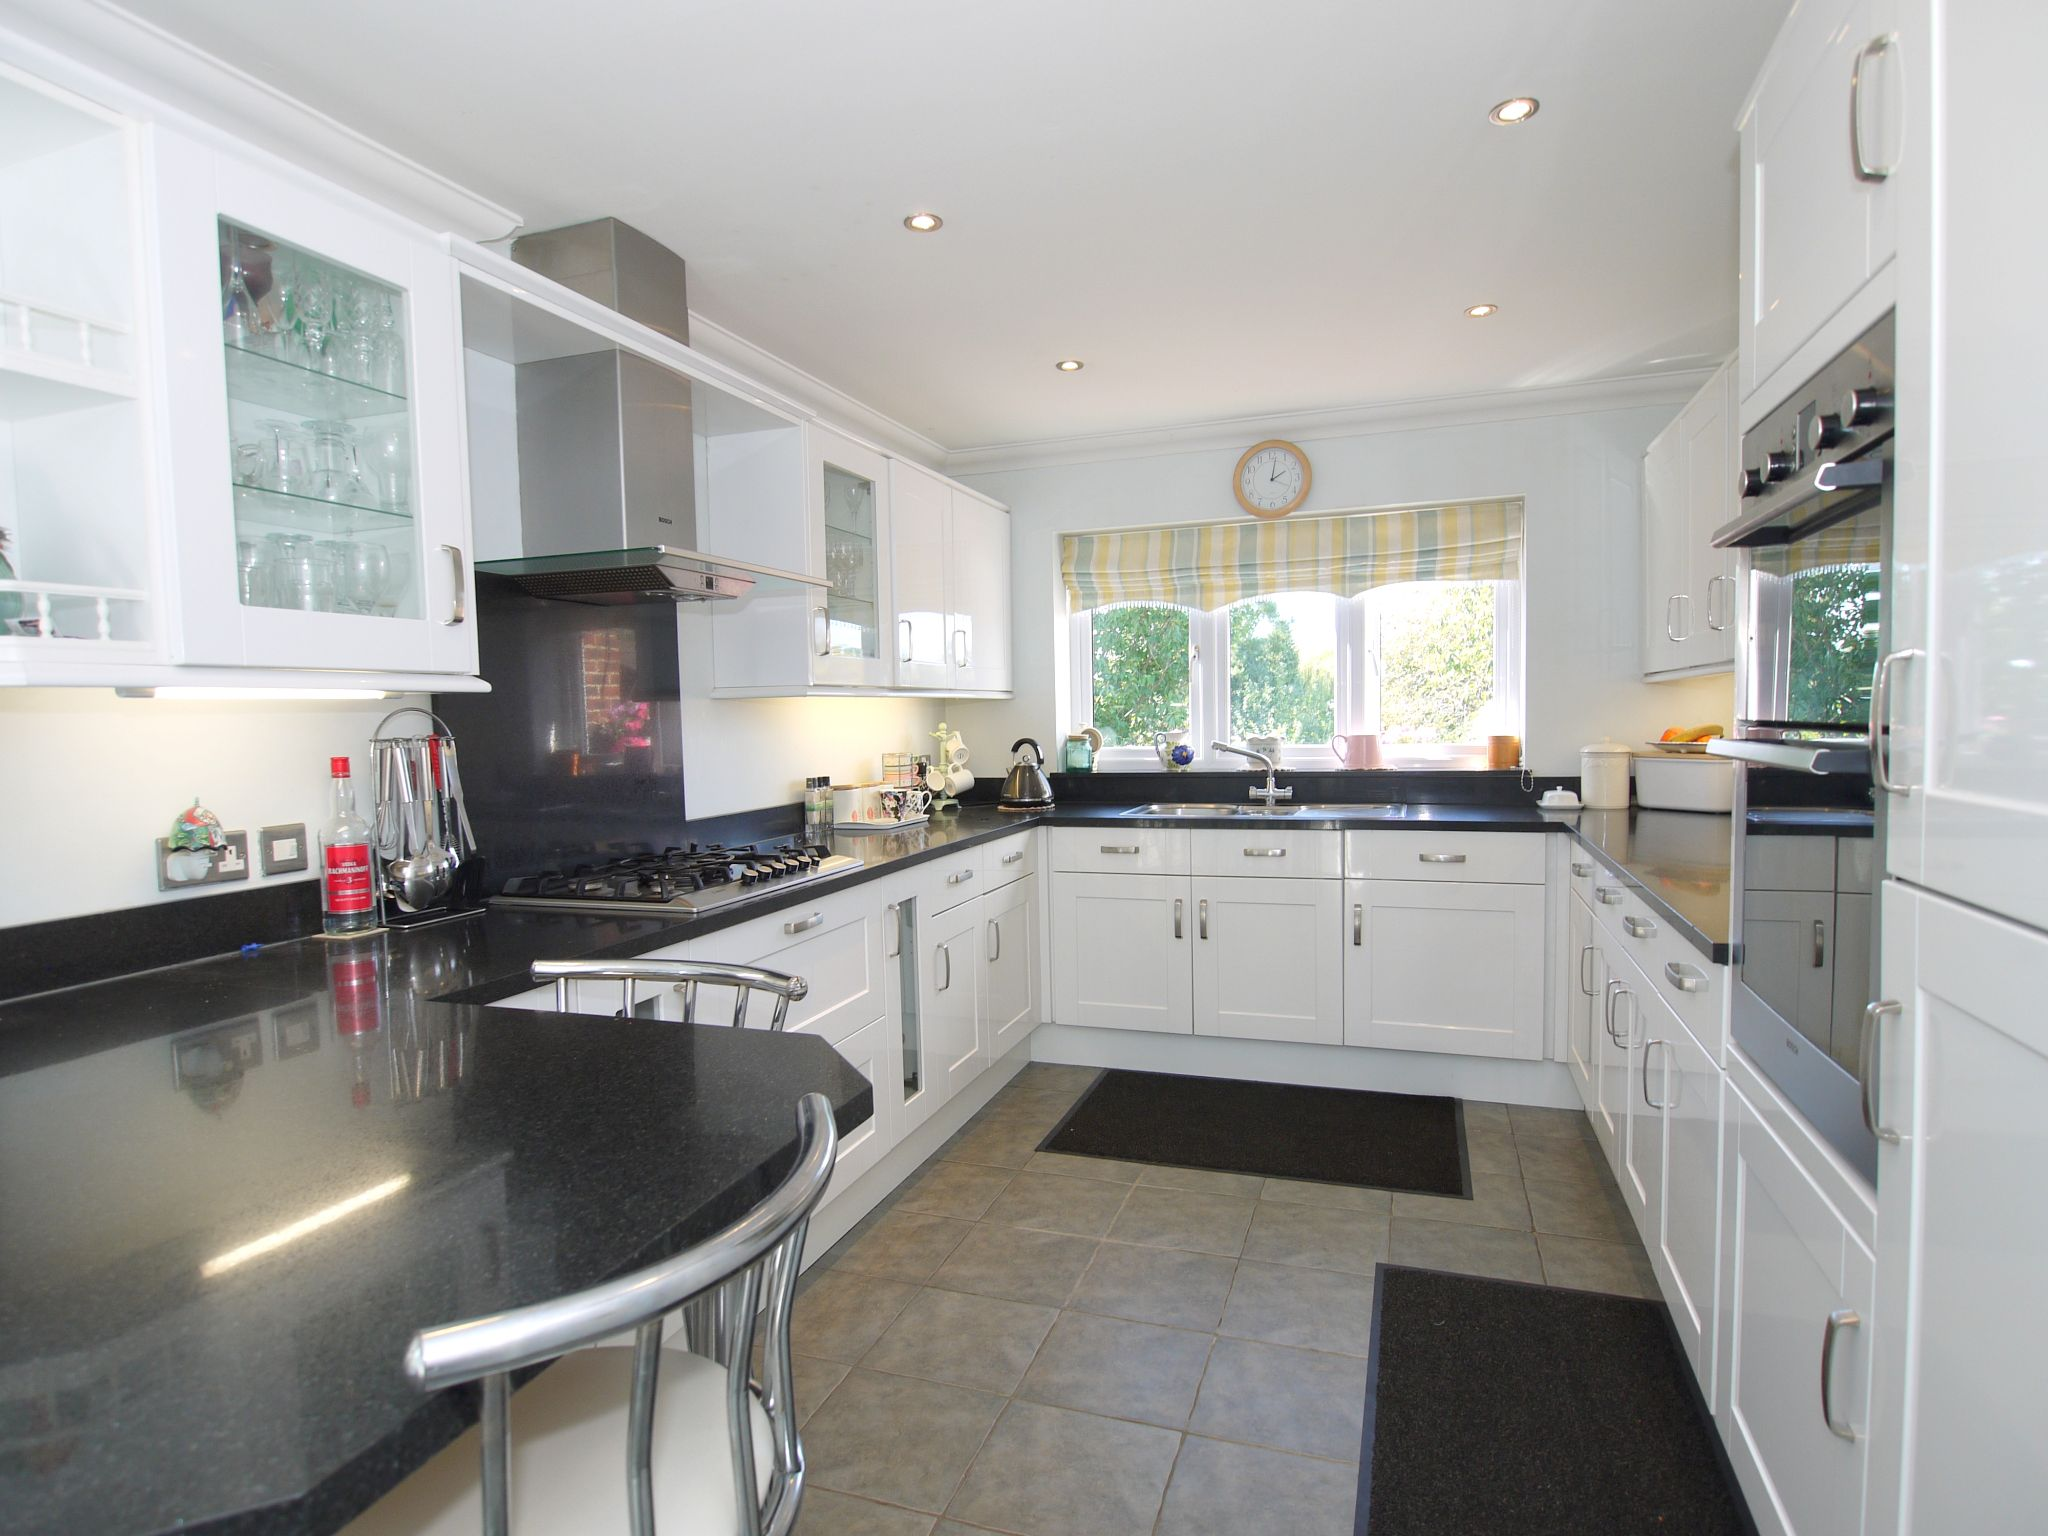 4 bedroom detached house For Sale in Sevenoaks - Photograph 2